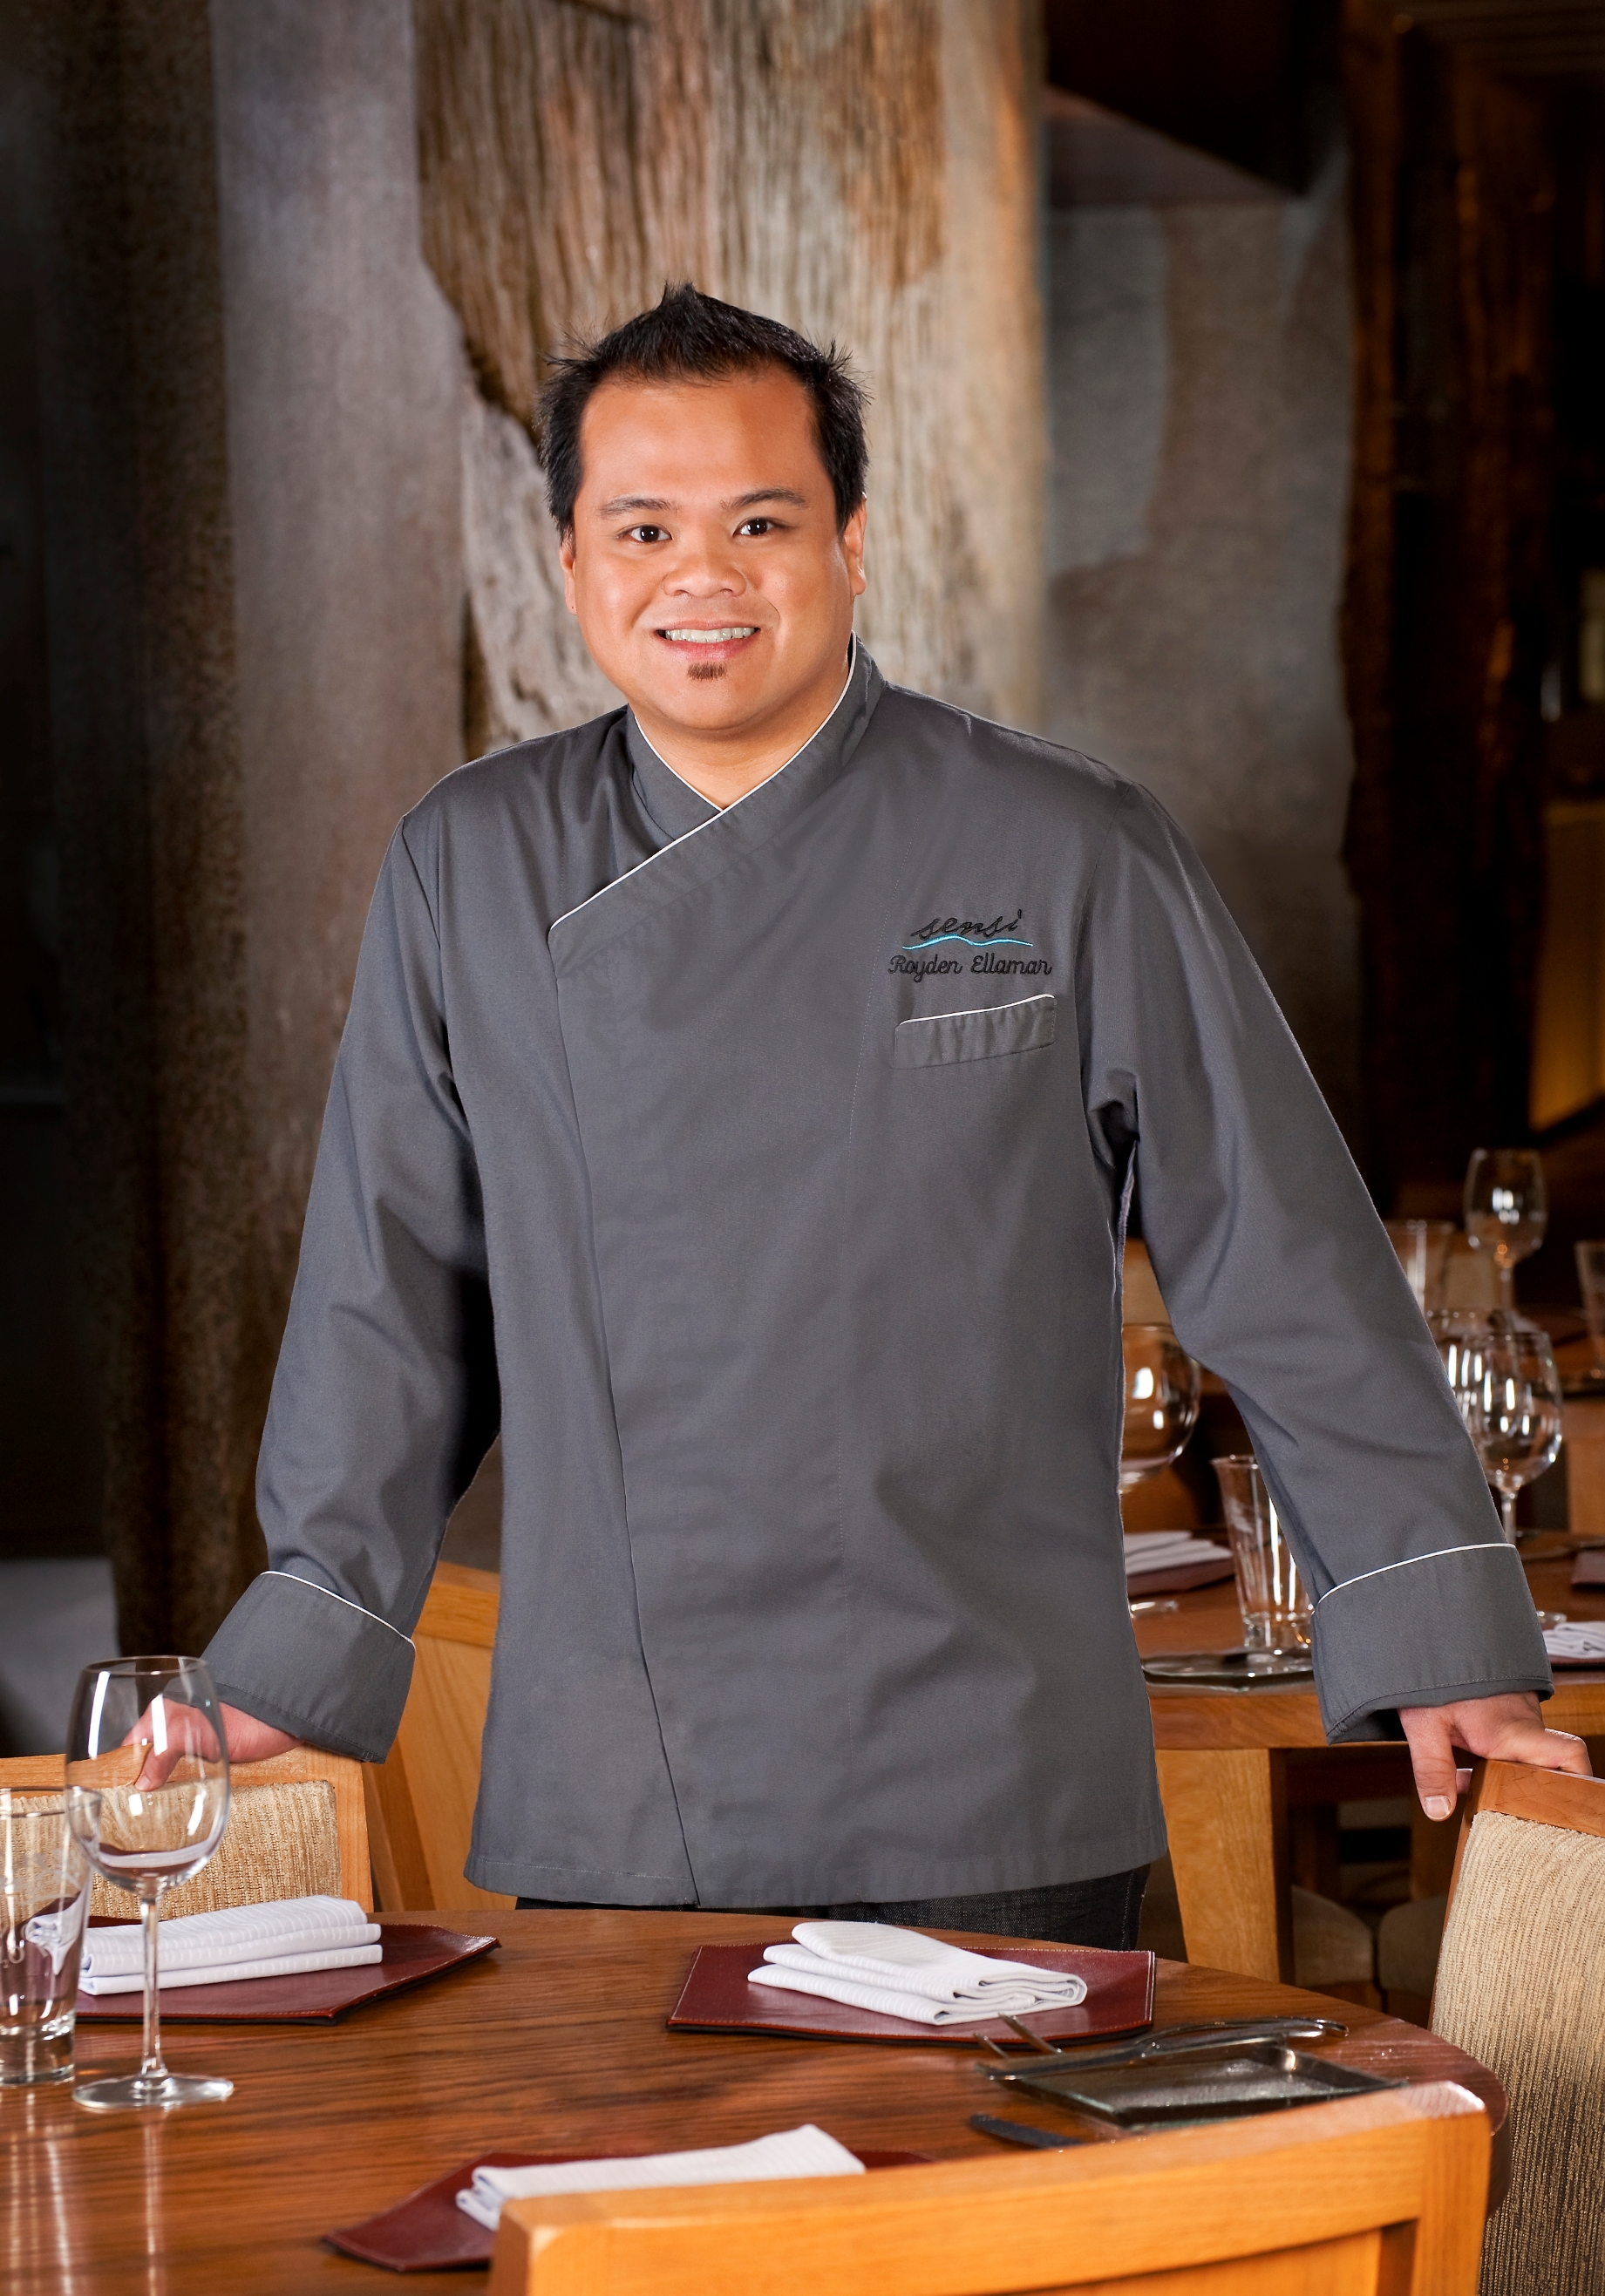 Sensi Executive Chef Royden Ellamar